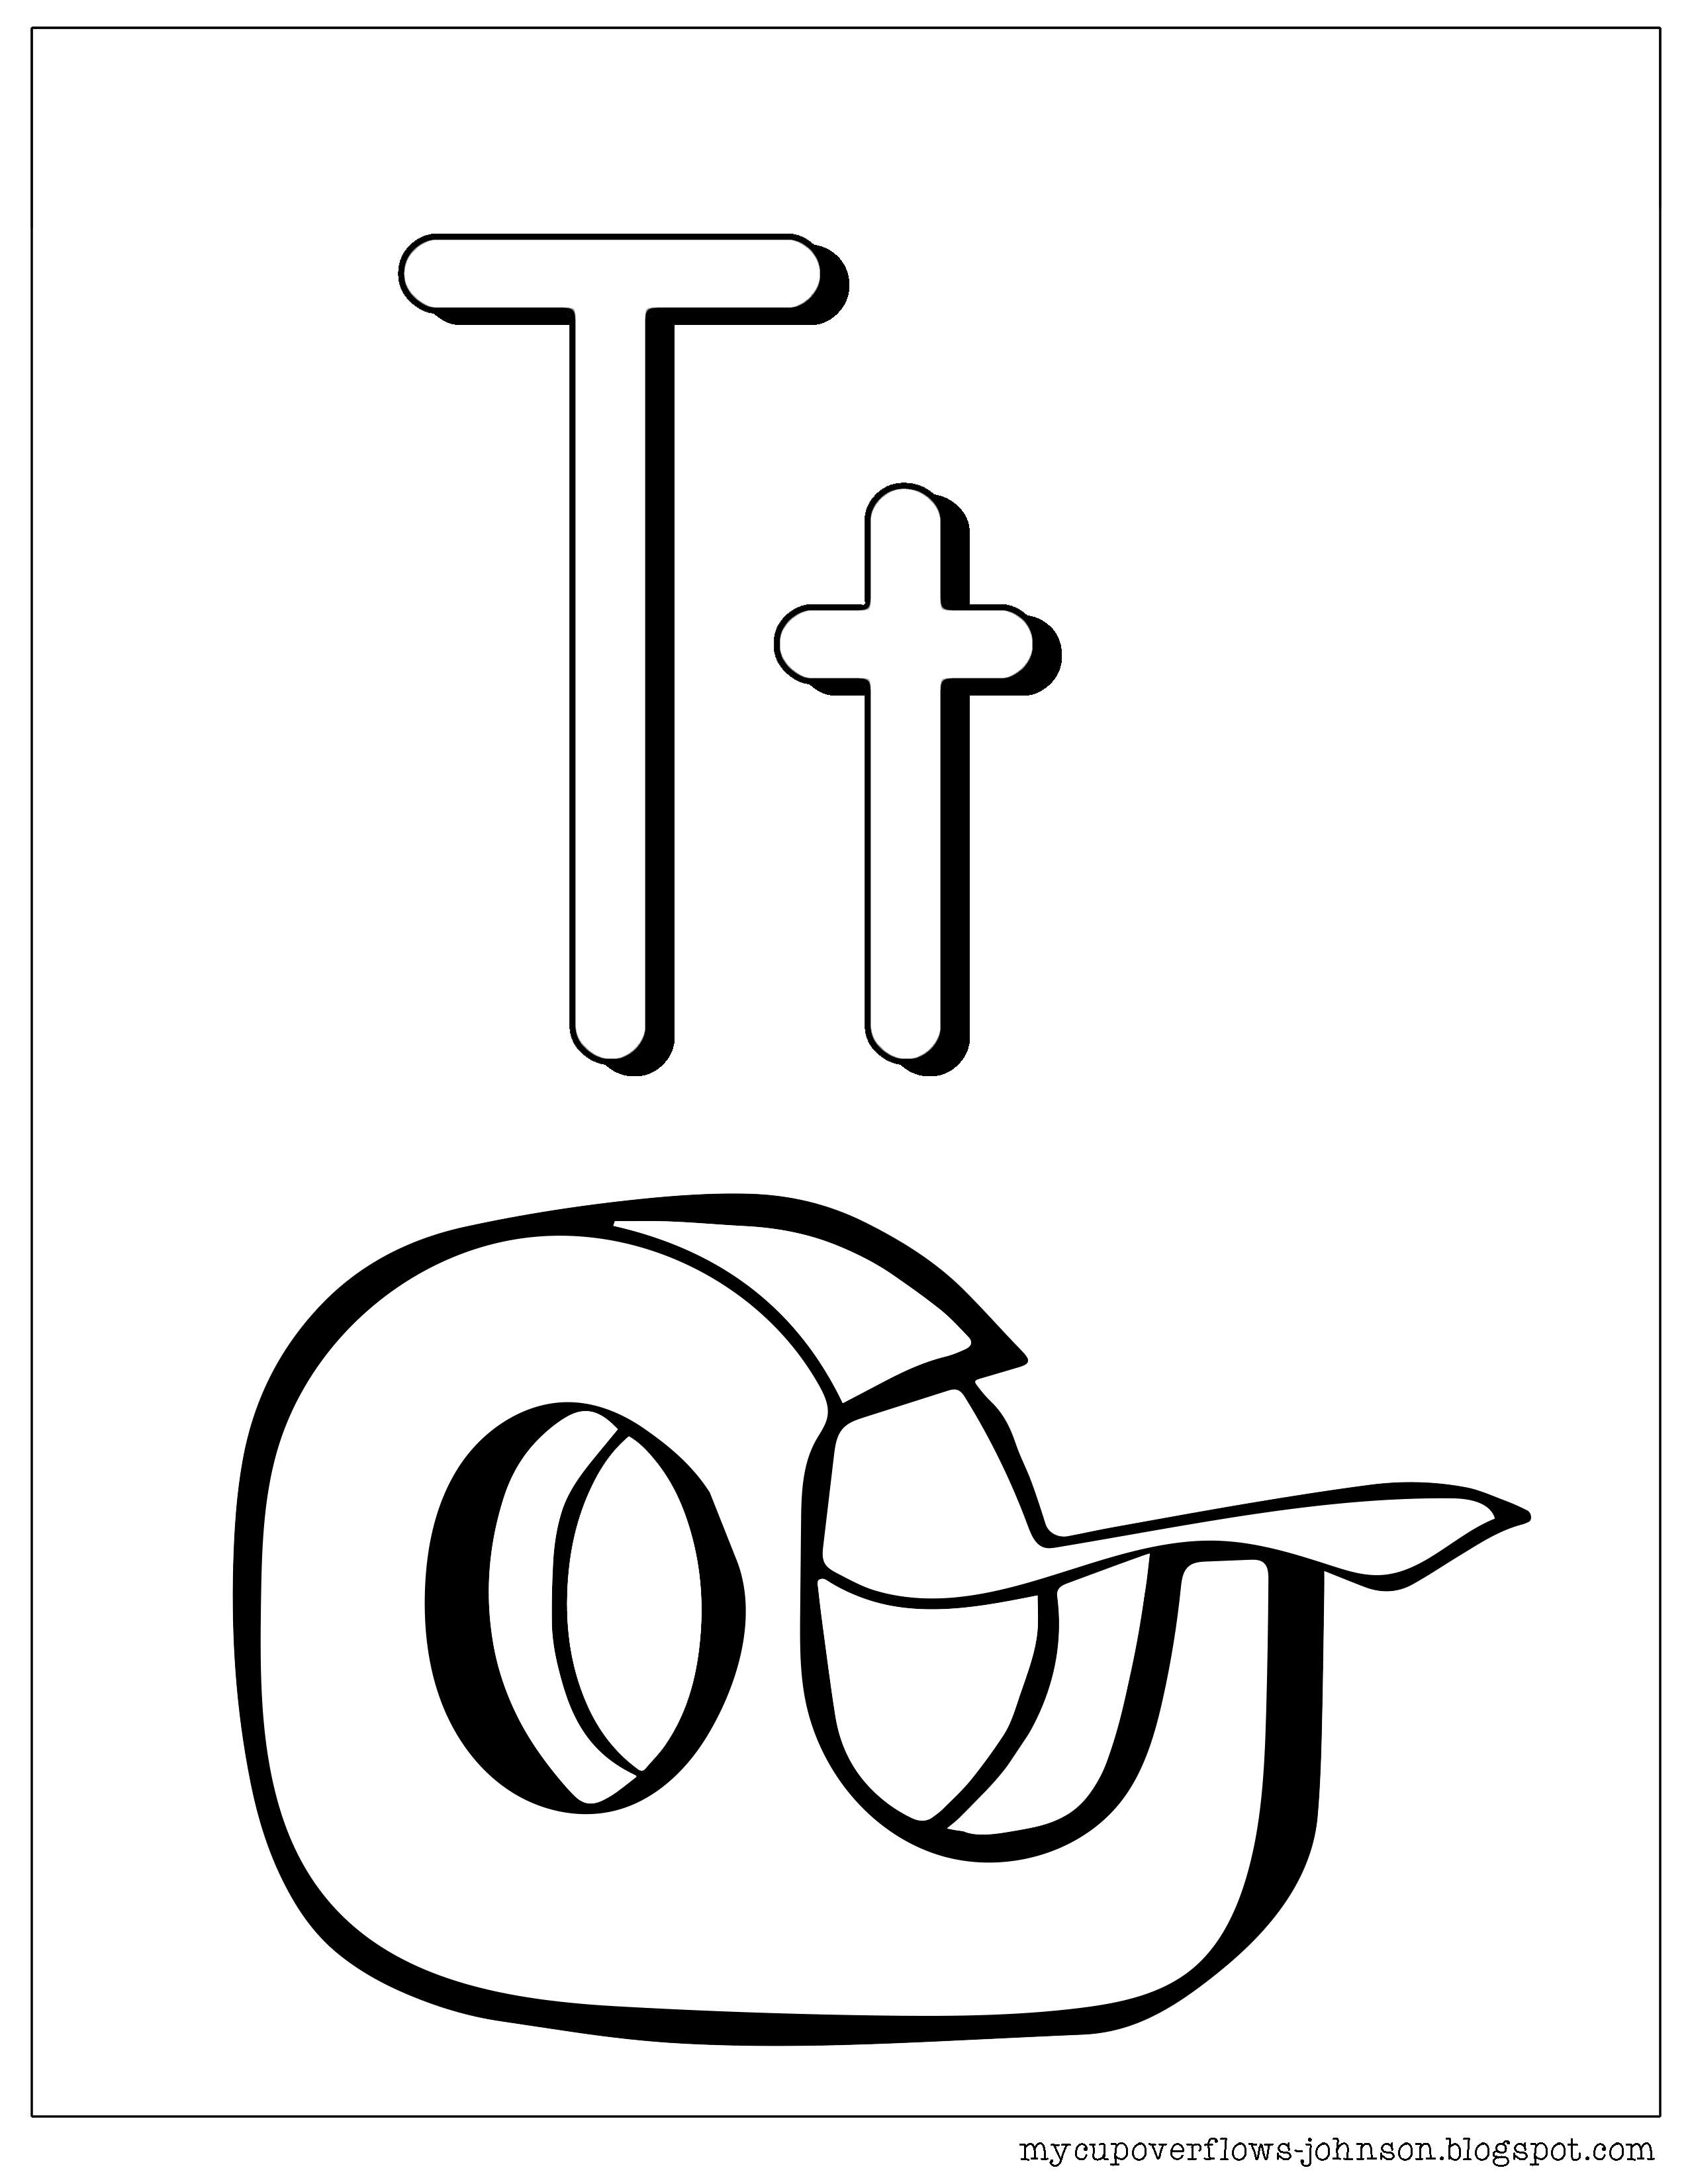 School Abcs In 2020 School Abc Coloring Pages